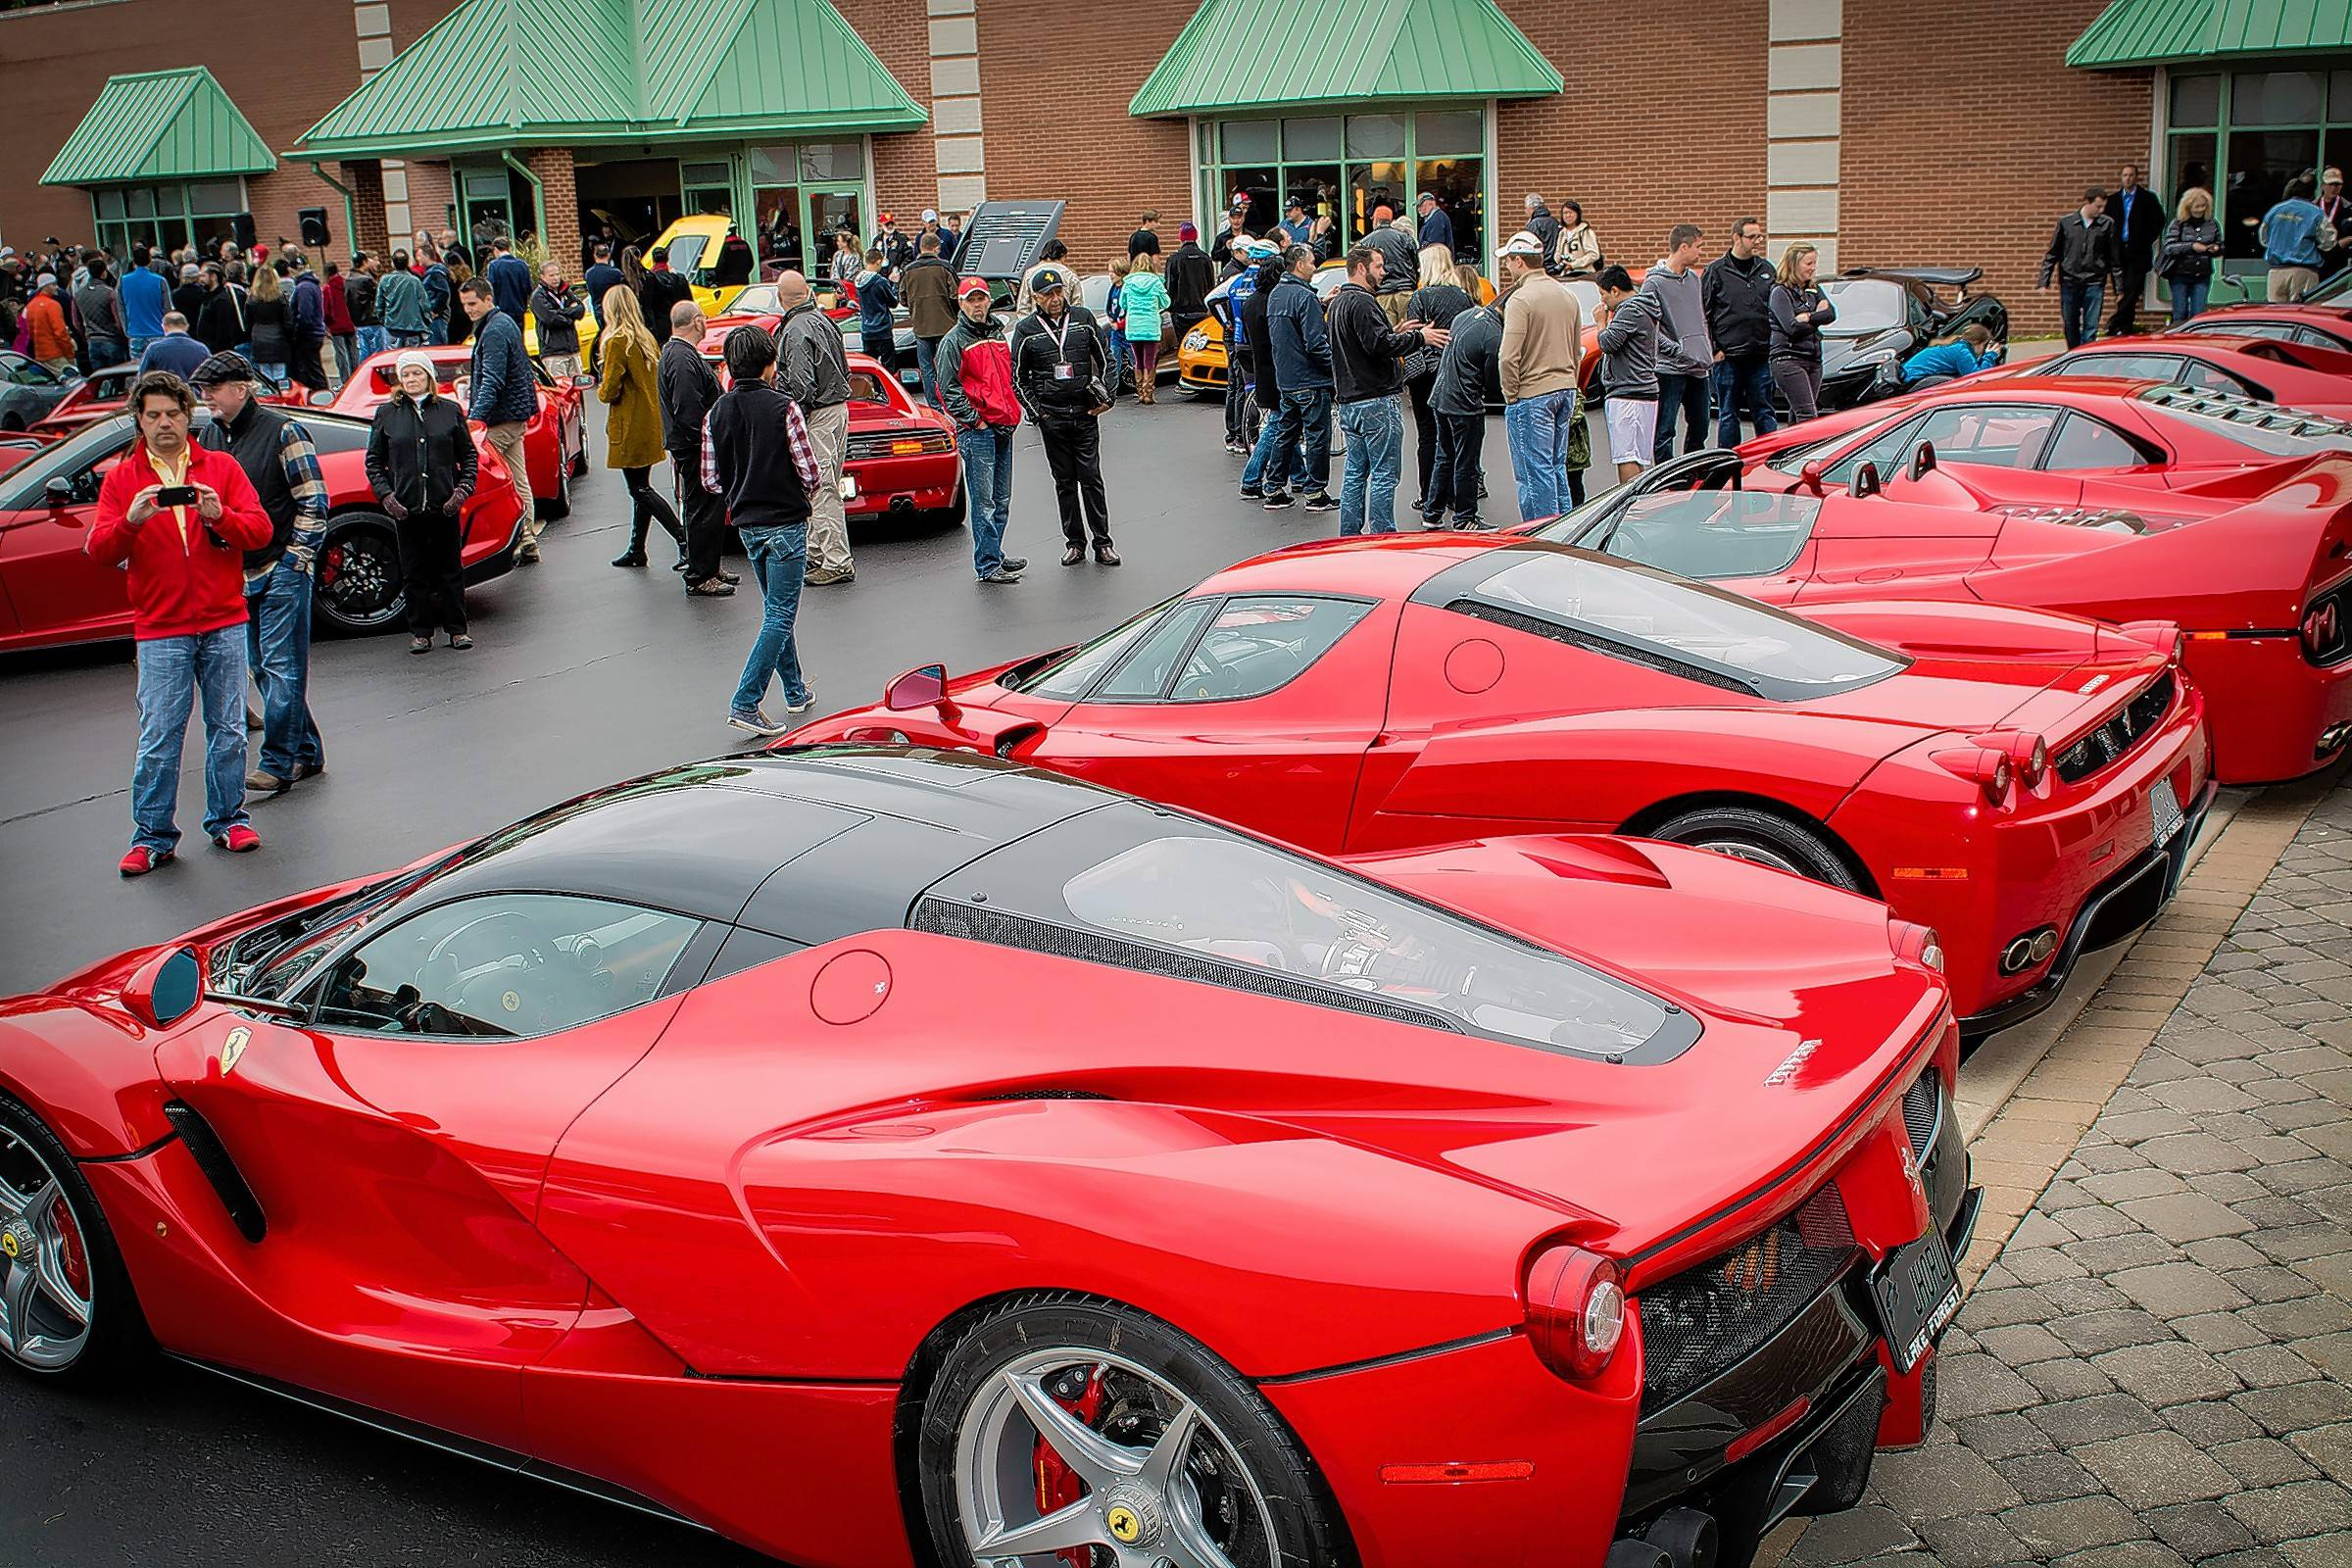 Ferraris Line Up Oct. 4 At Lake Forest Sportscars For The Auto Dealeru0027s  20th Annual